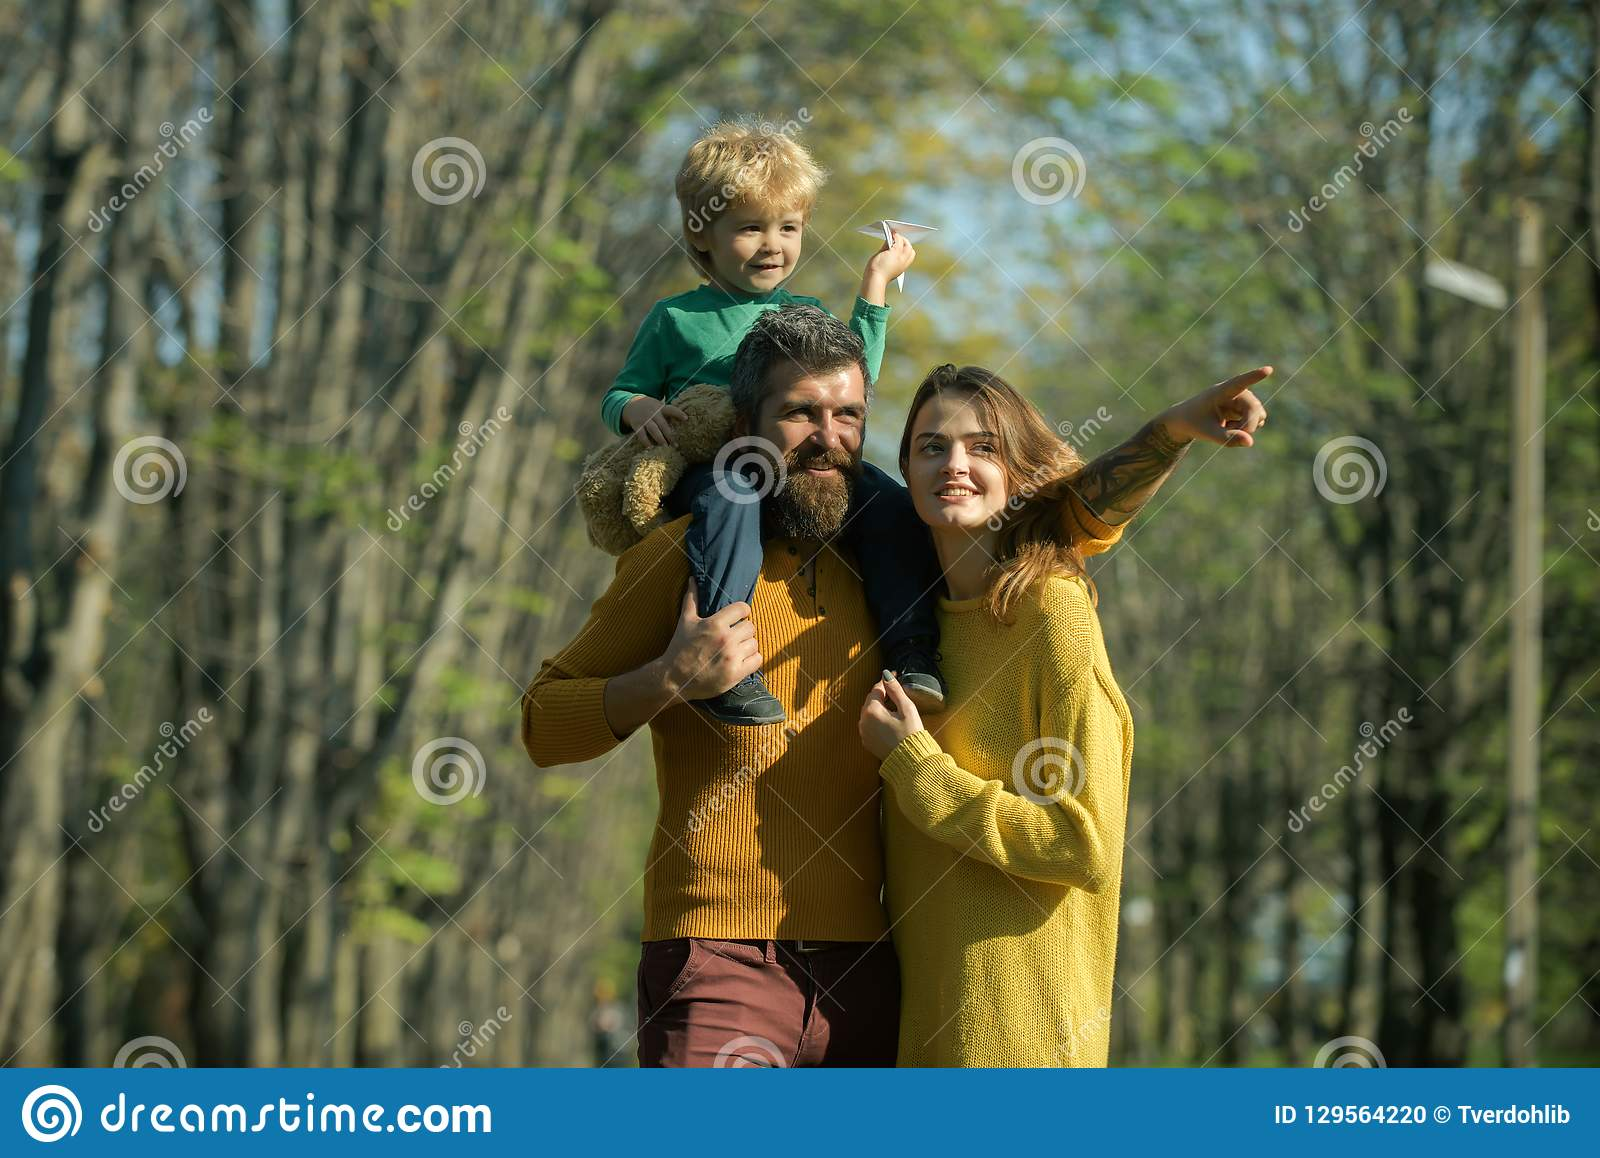 Little child dreaming about travelling by plane. Family launch paper plane in park, dreaming concept. Fly high under the